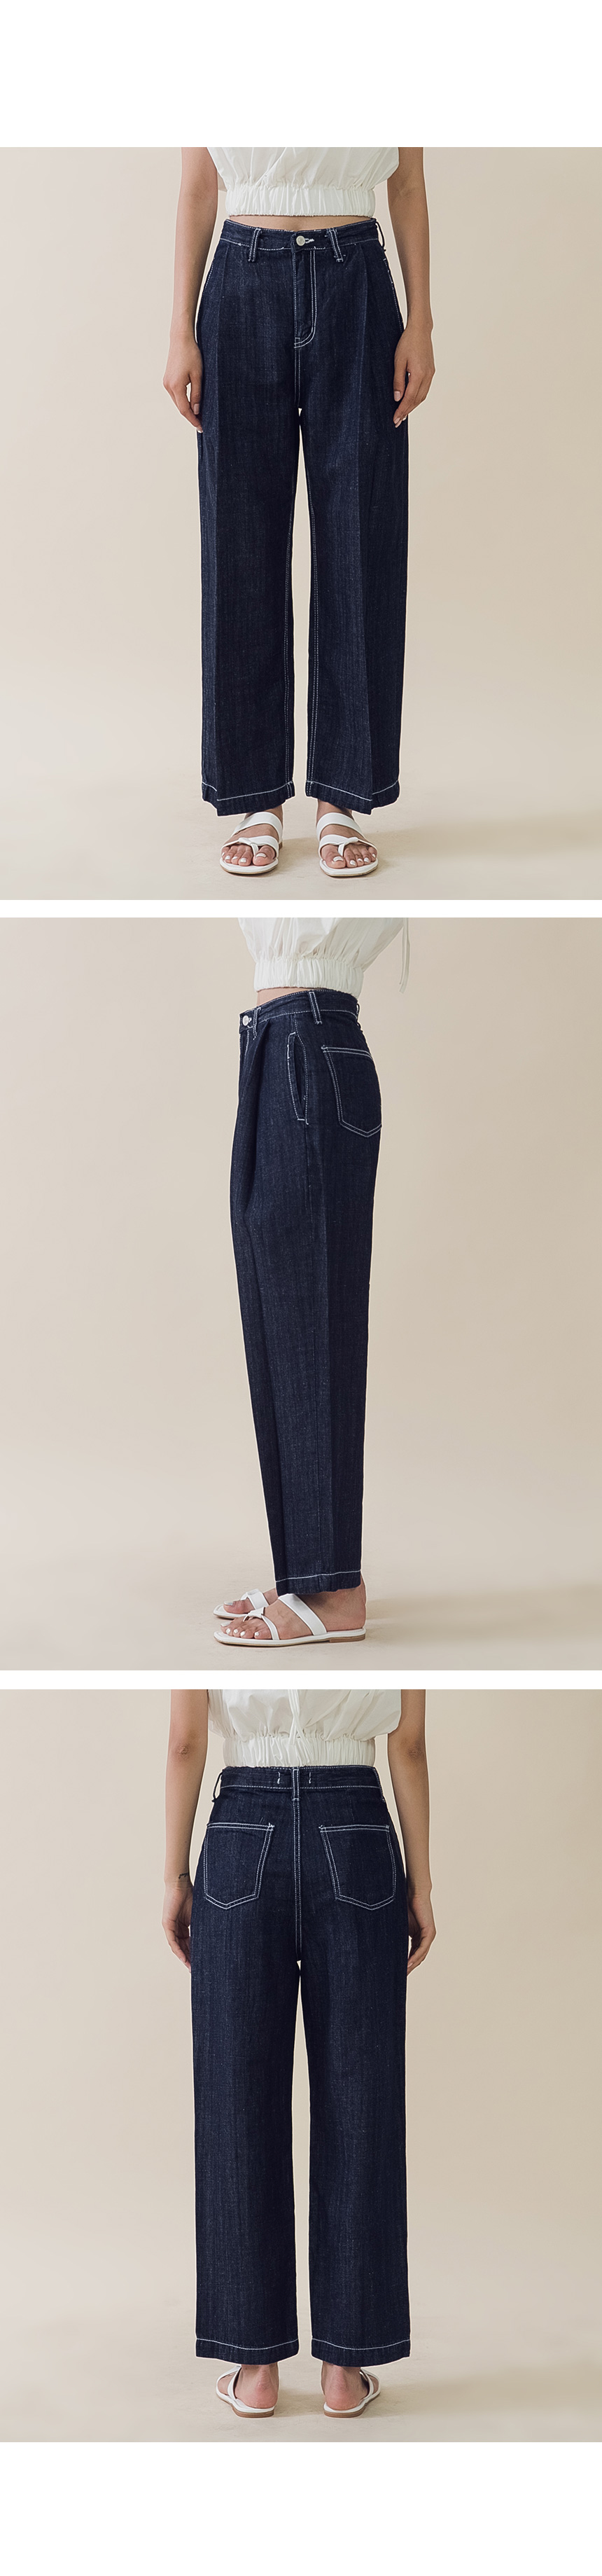 Cotton front wrinkle pants